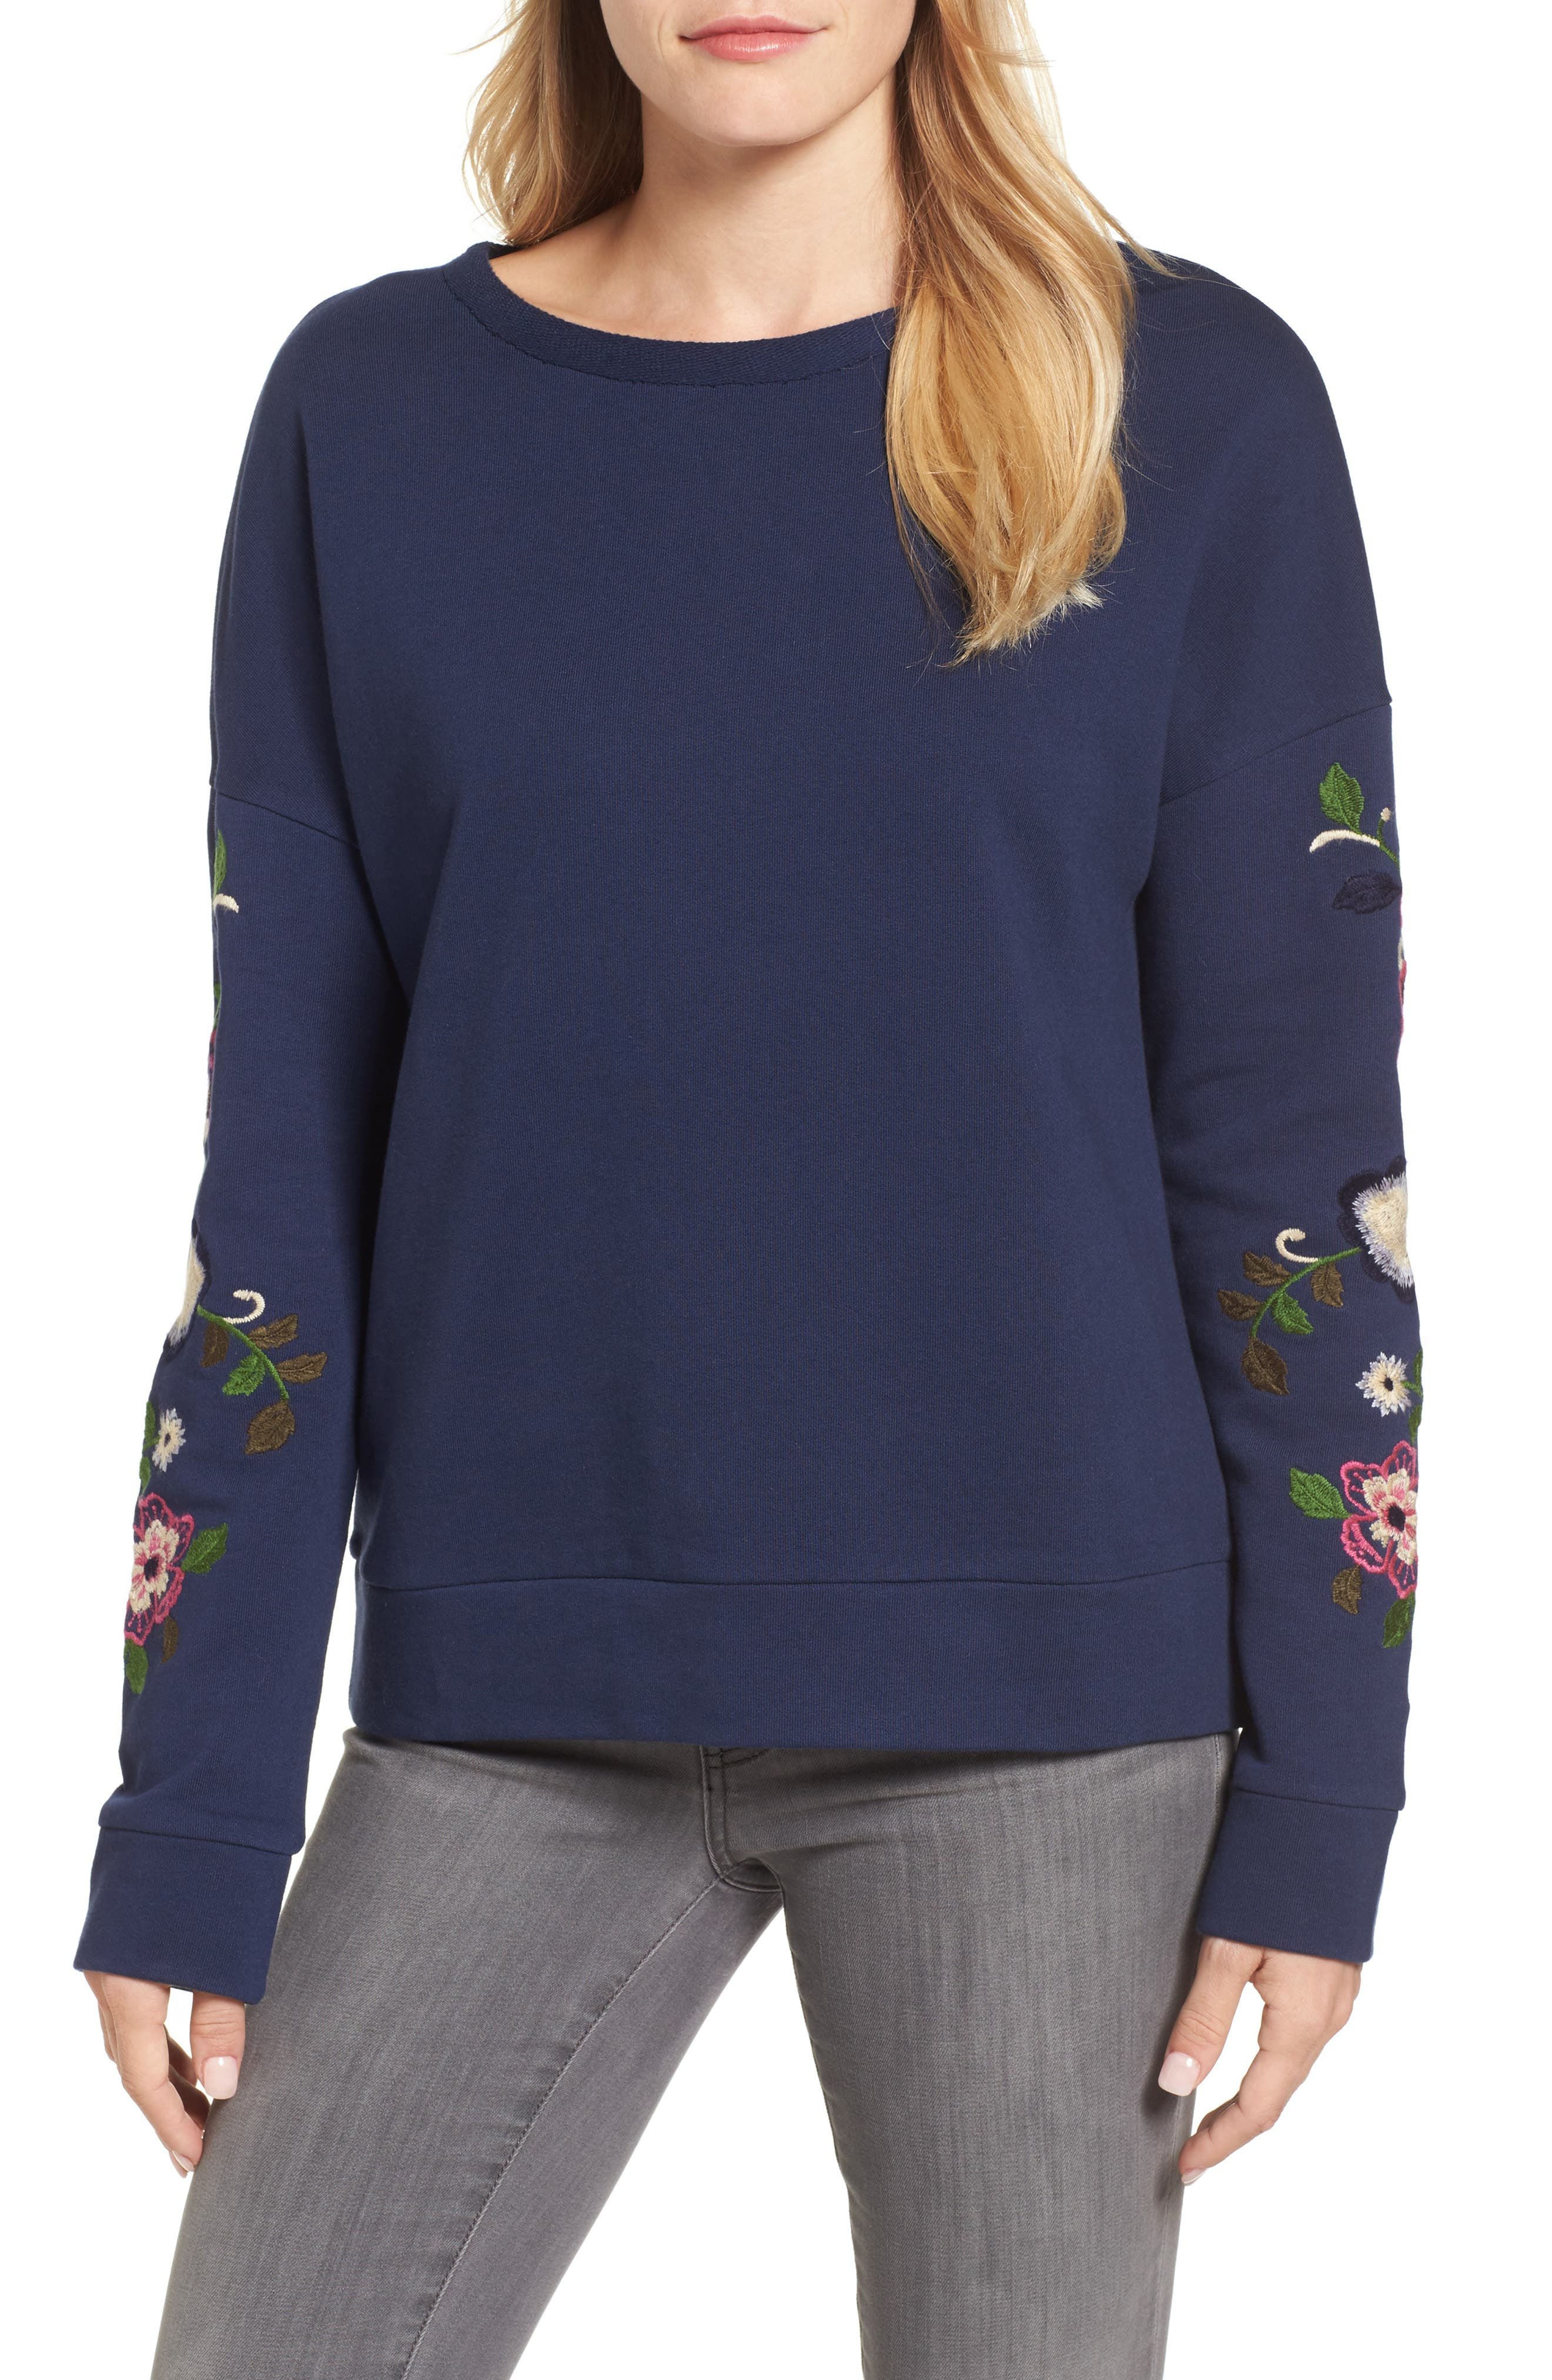 Embroidered Sleeve Sweatshirt,                         Main,                         color, Navy- Rose Floral